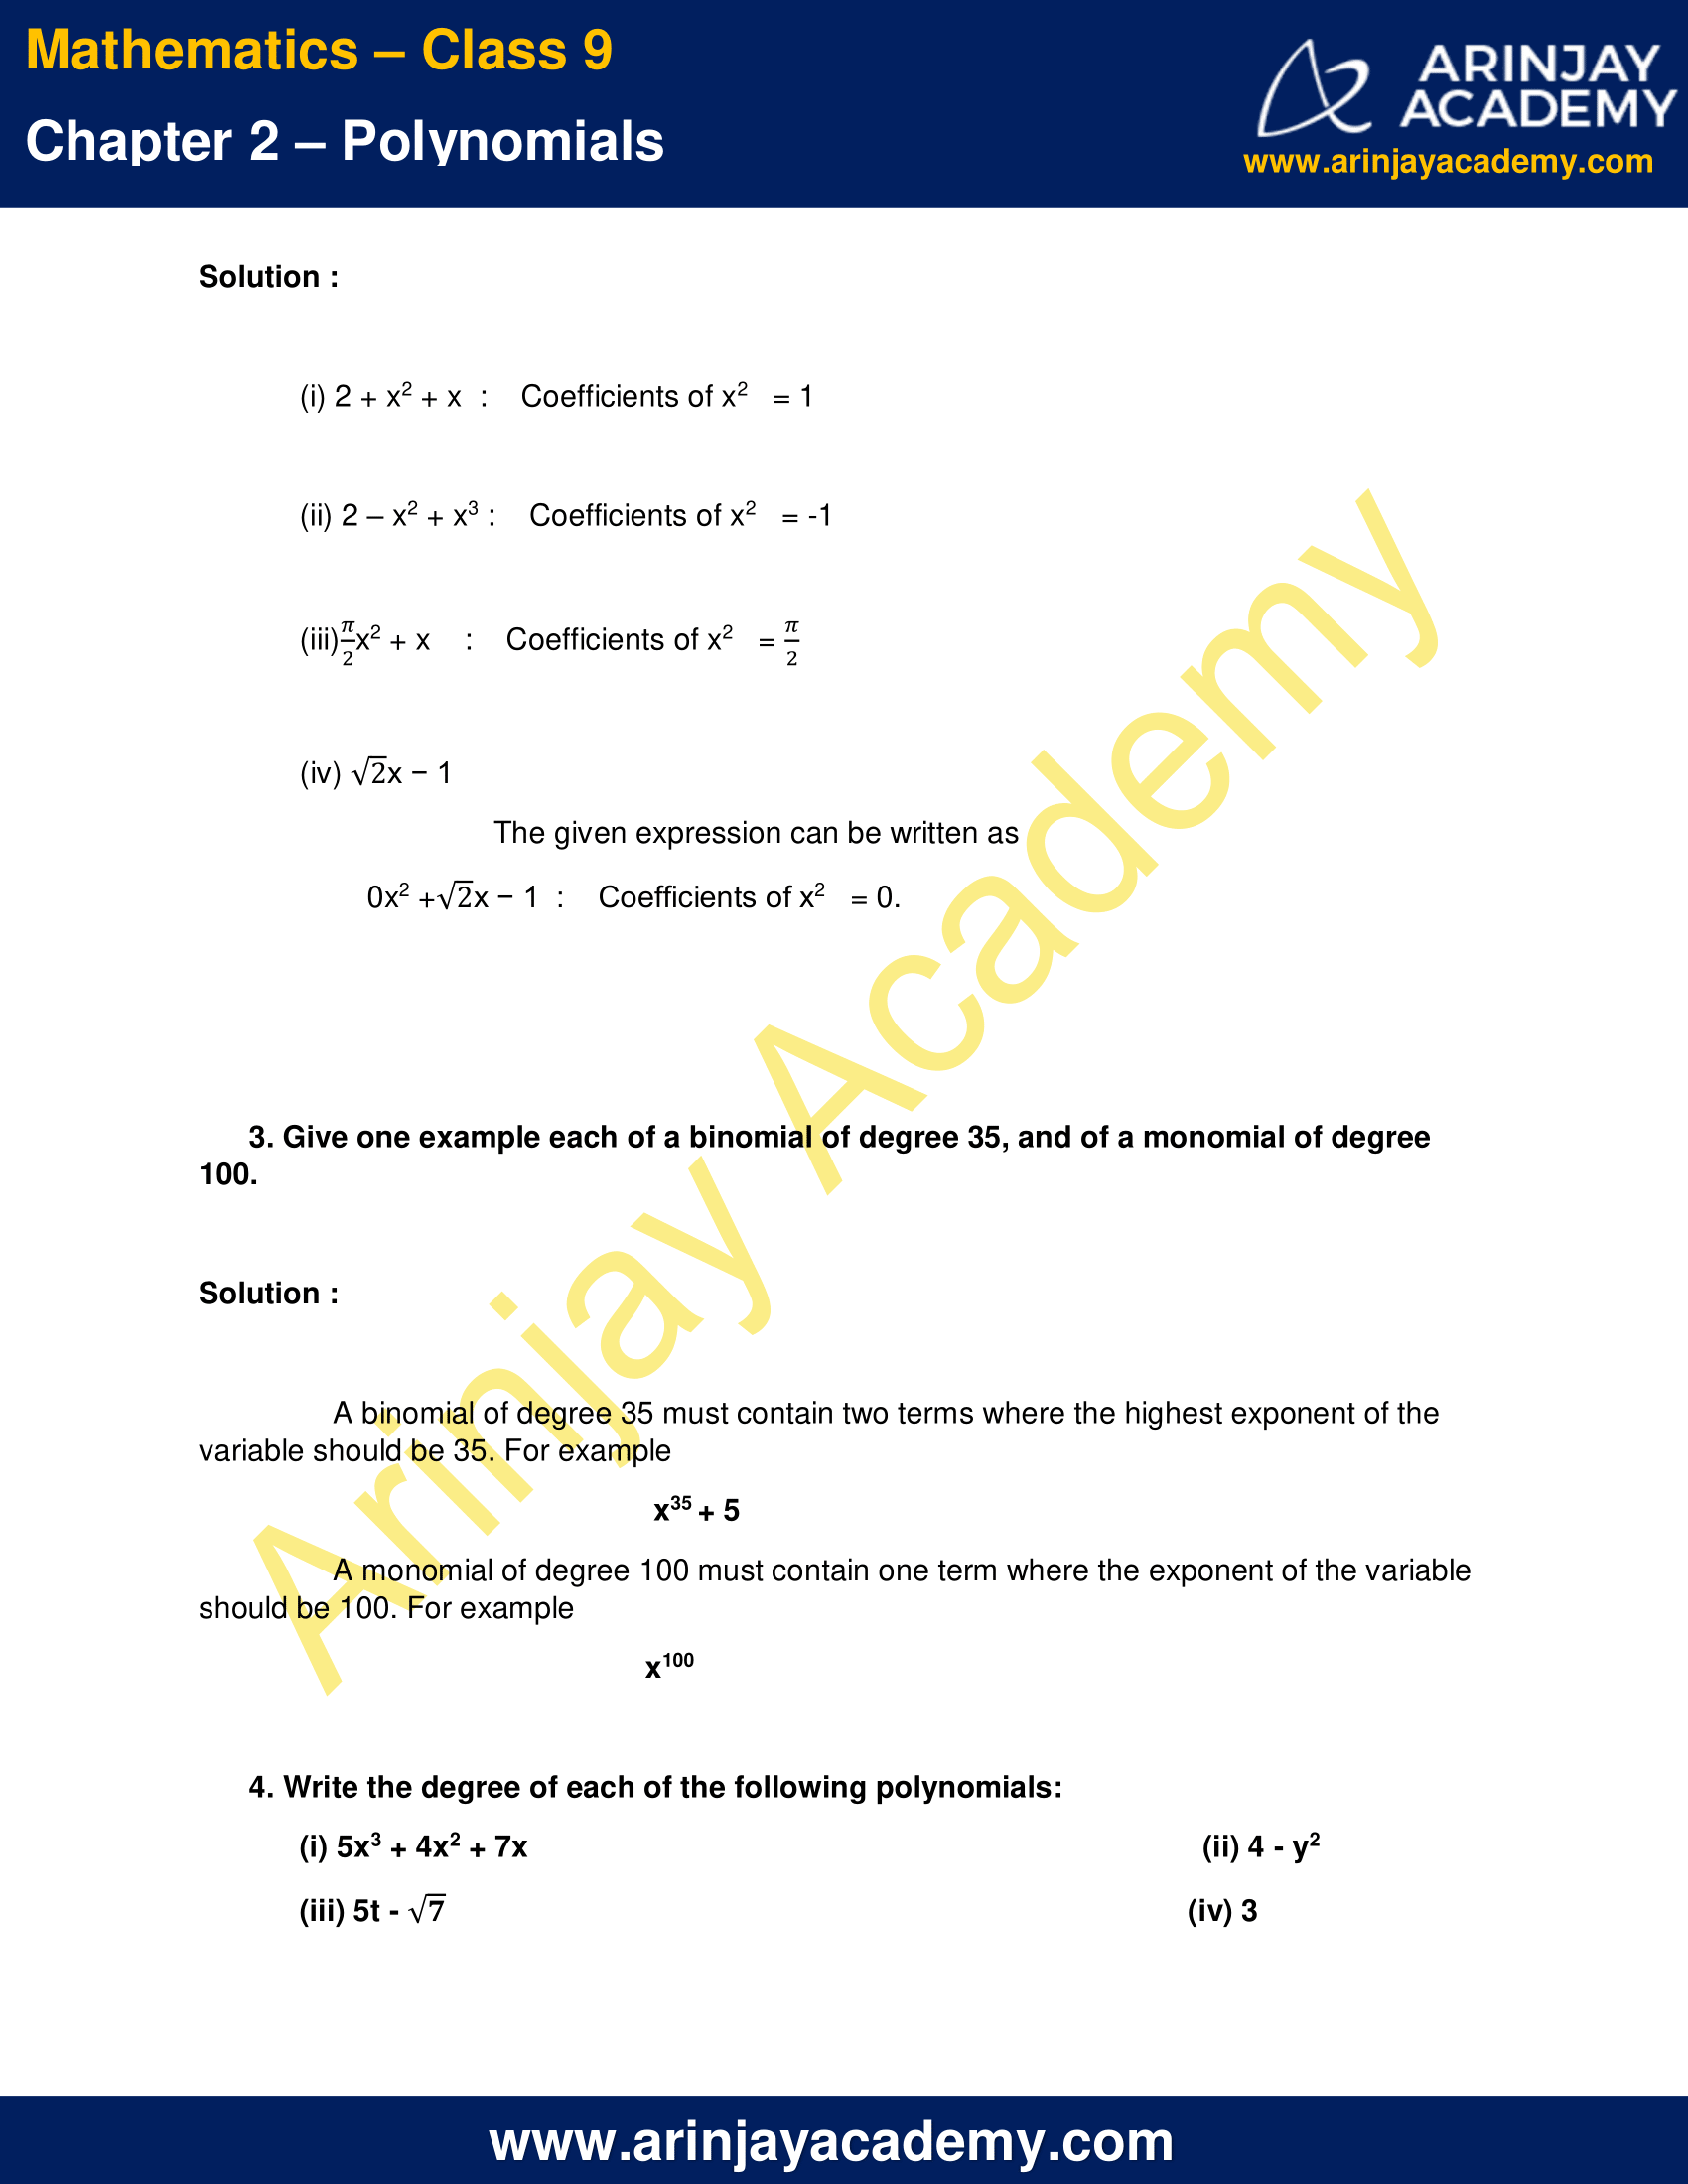 NCERT Solutions For Class 9 Maths Chapter 2 Exercise 2.1 image 2